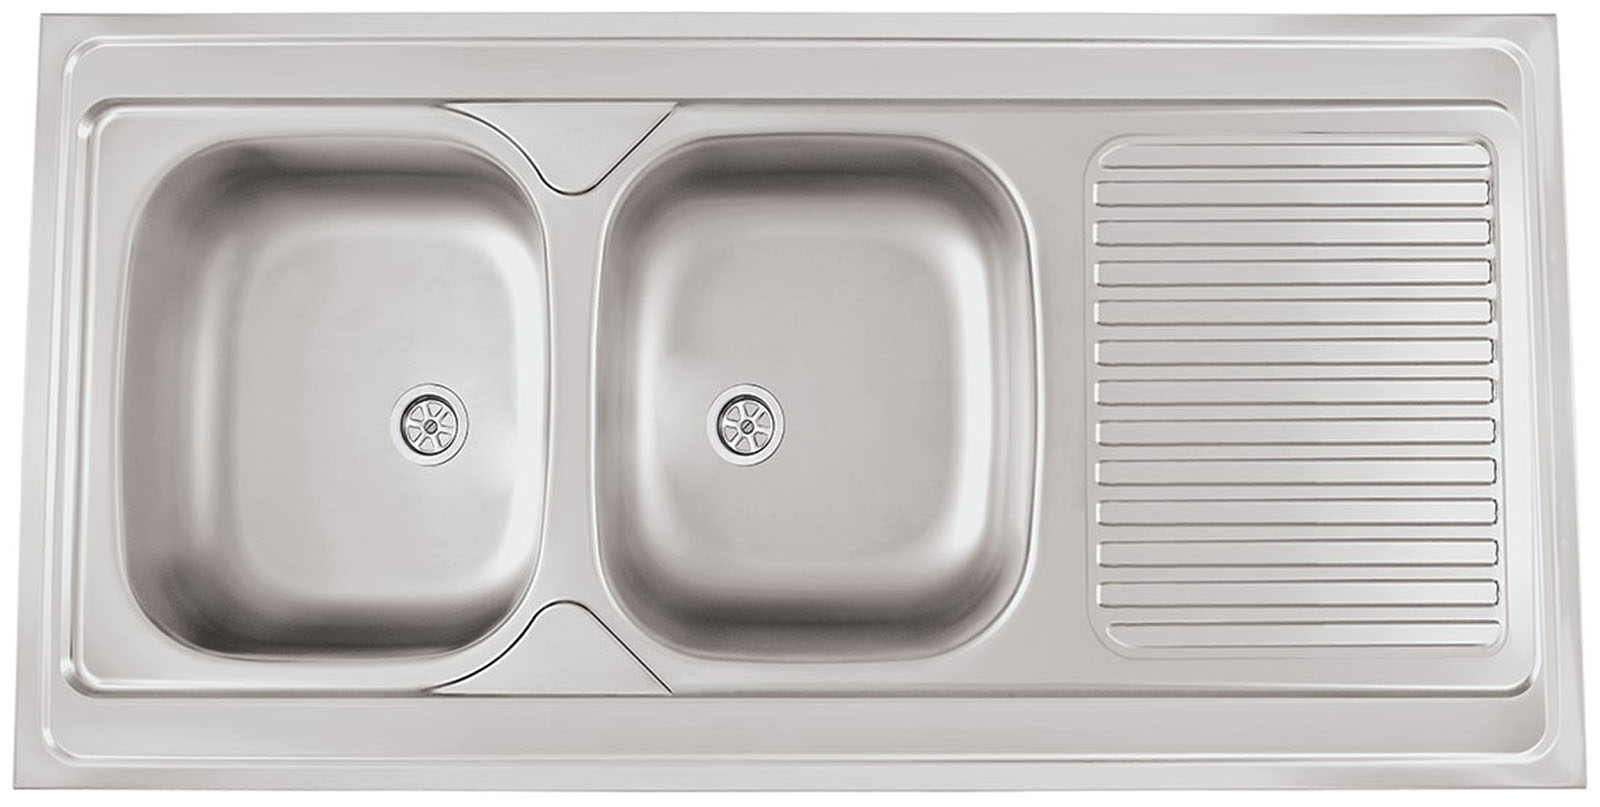 Sinks CLP-A 1200 DUO M 0,6mm matný